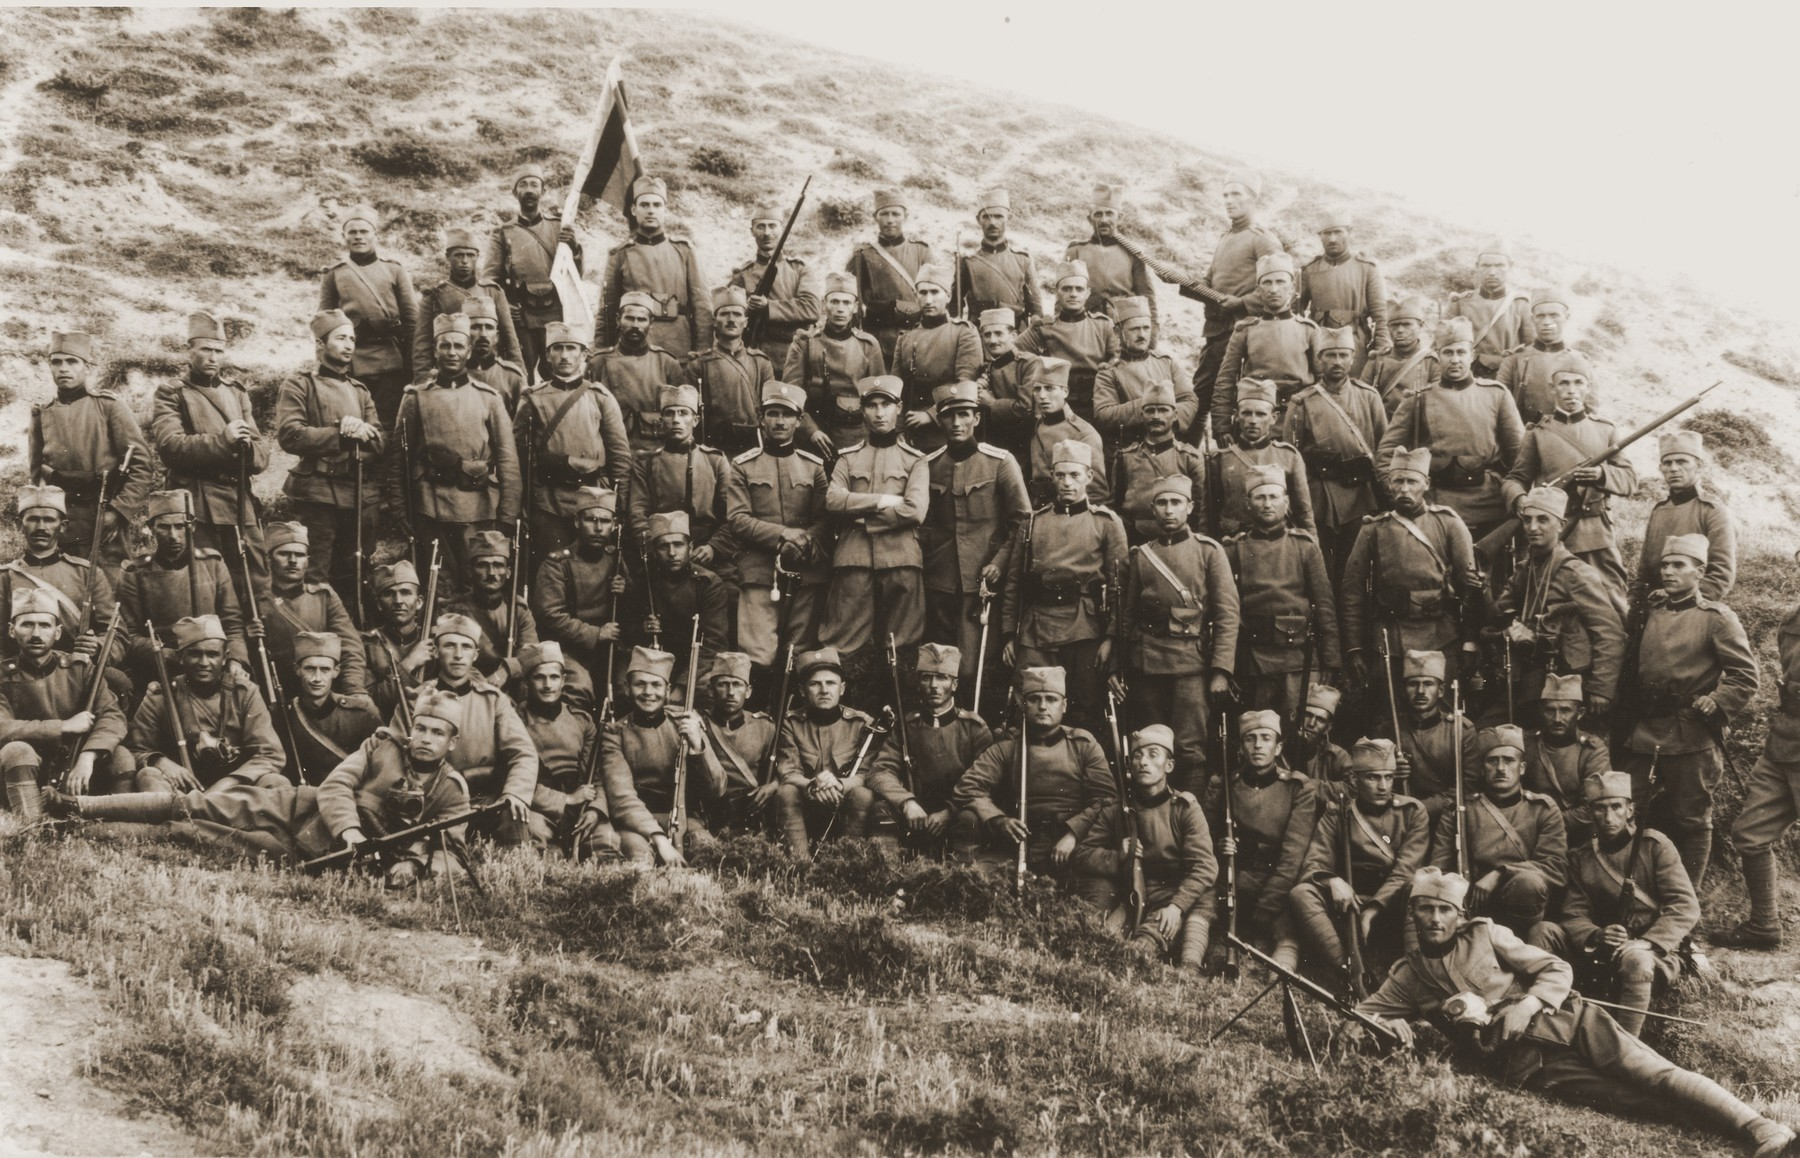 A Yugoslav military unit that included Jewish recruits, poses on a barren hillside.